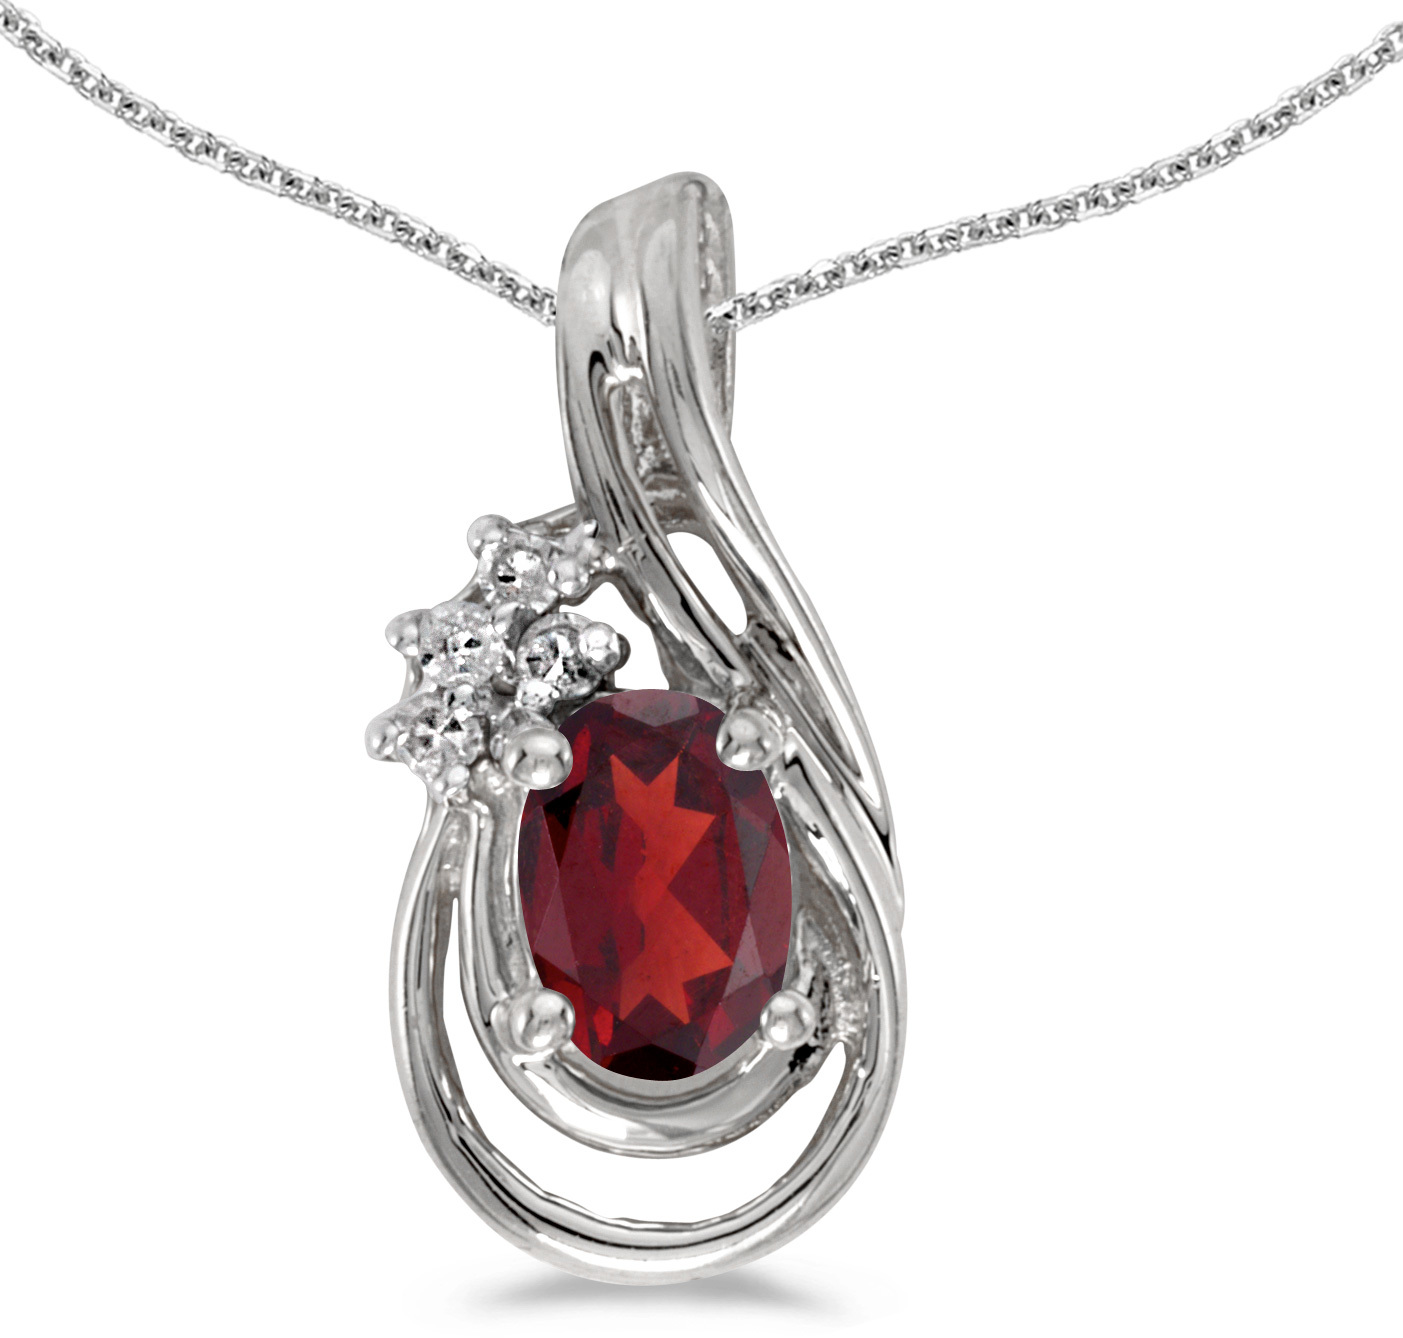 14k White Gold Oval Garnet And Diamond Teardrop Pendant (Chain NOT included)